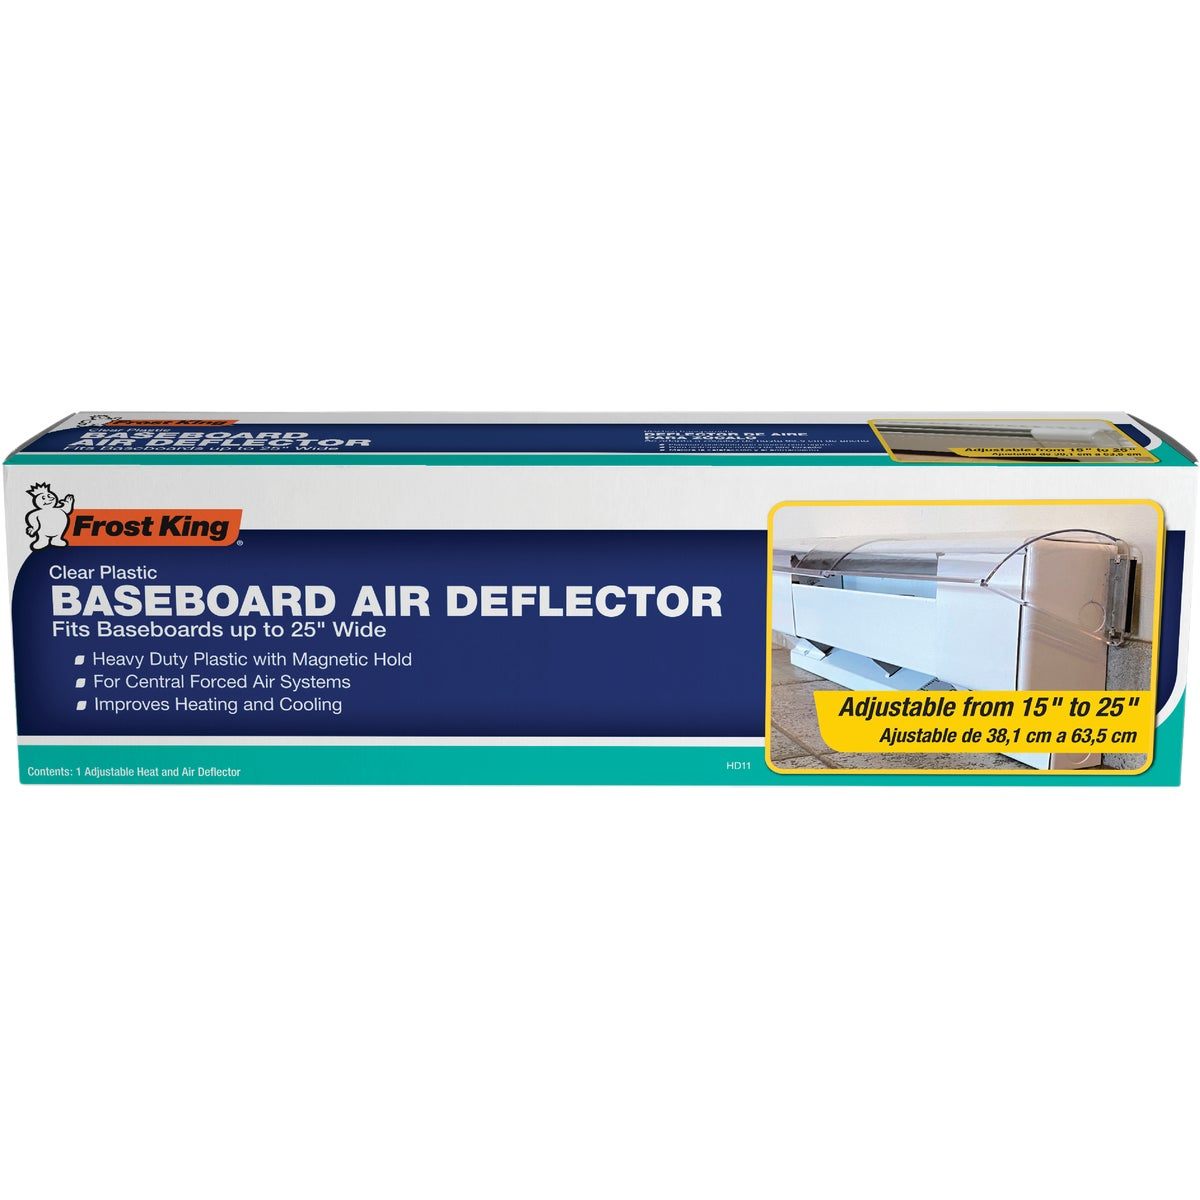 "15-25"" ADJ AIR DEFLECTOR - HD11 by Thermwell Prods Co"